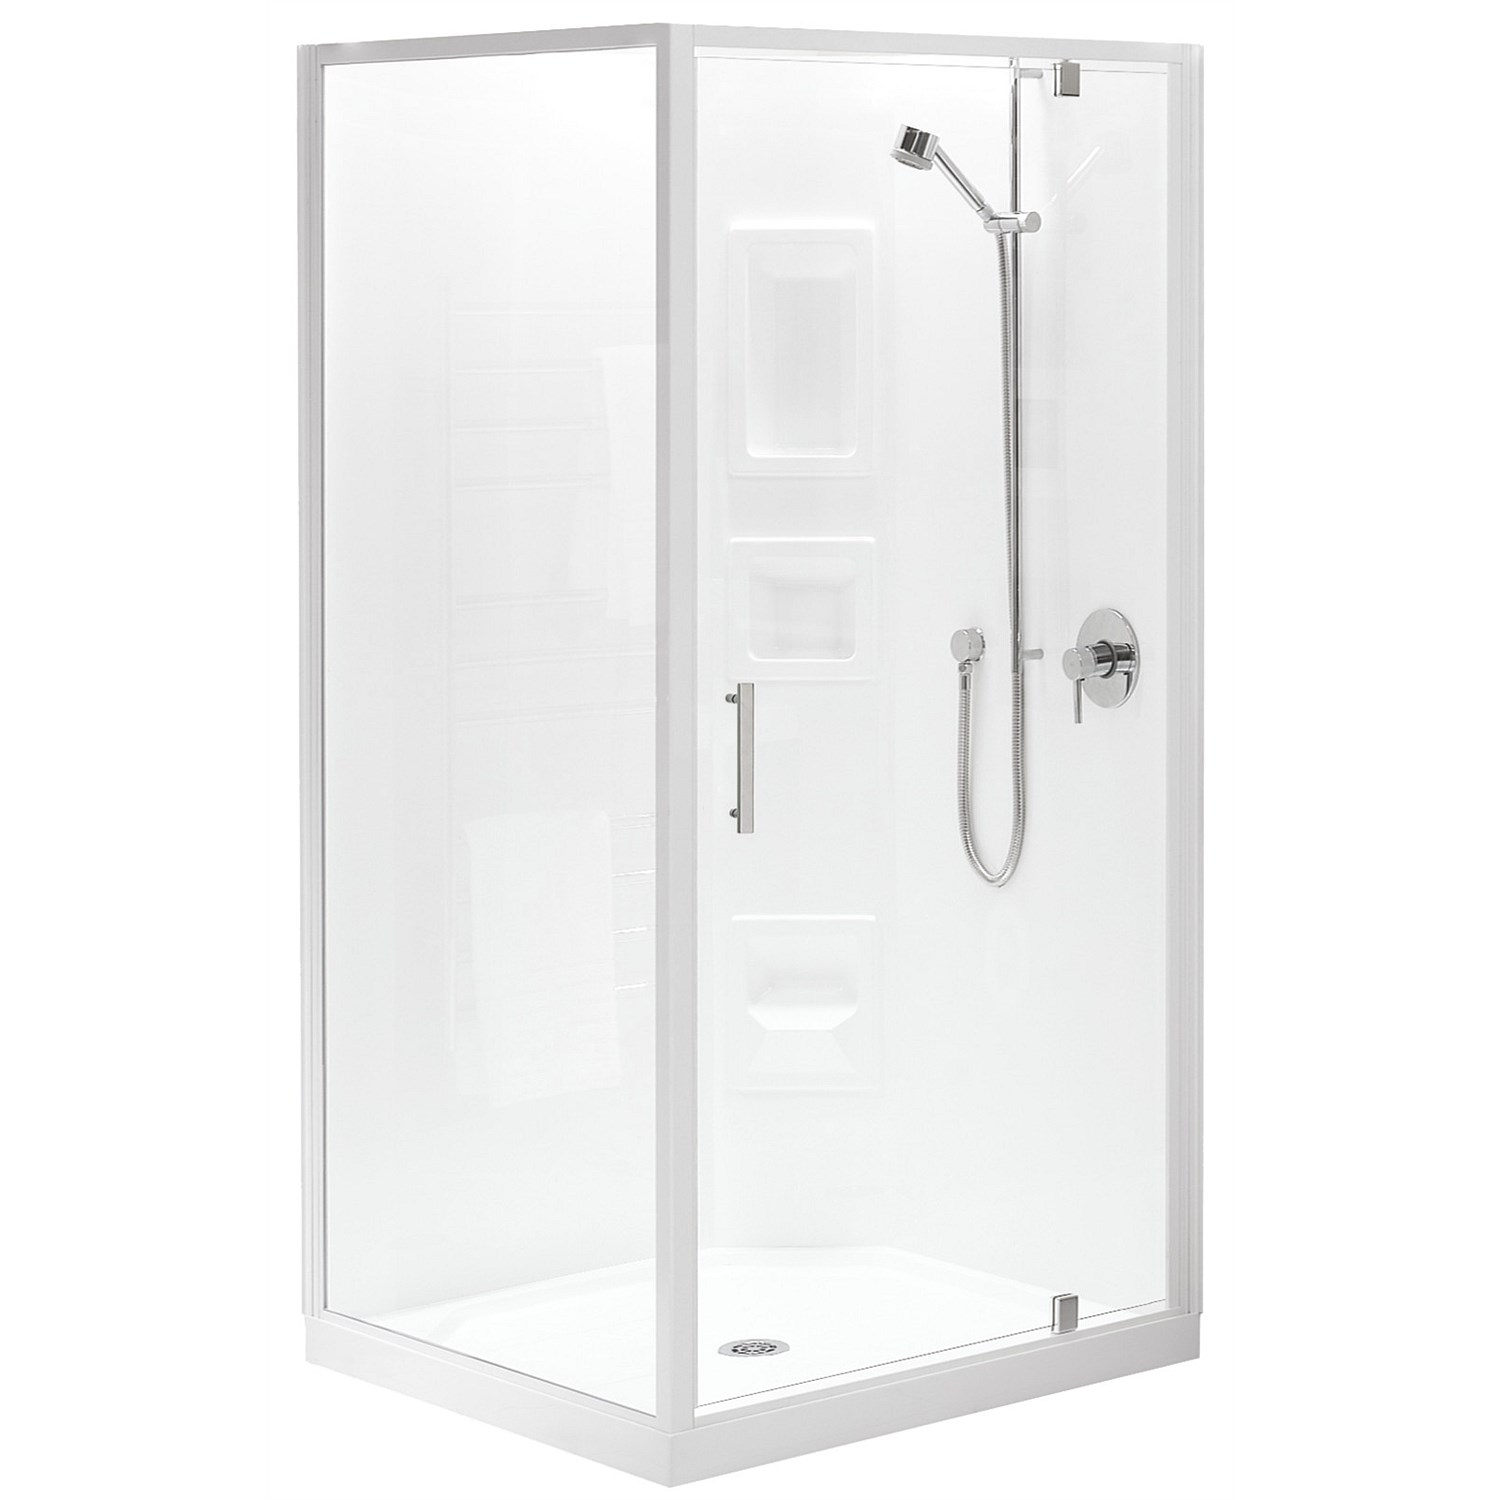 Acrylic Clearlite Induro Tall 1000mm 2 Sided Shower Enclosure